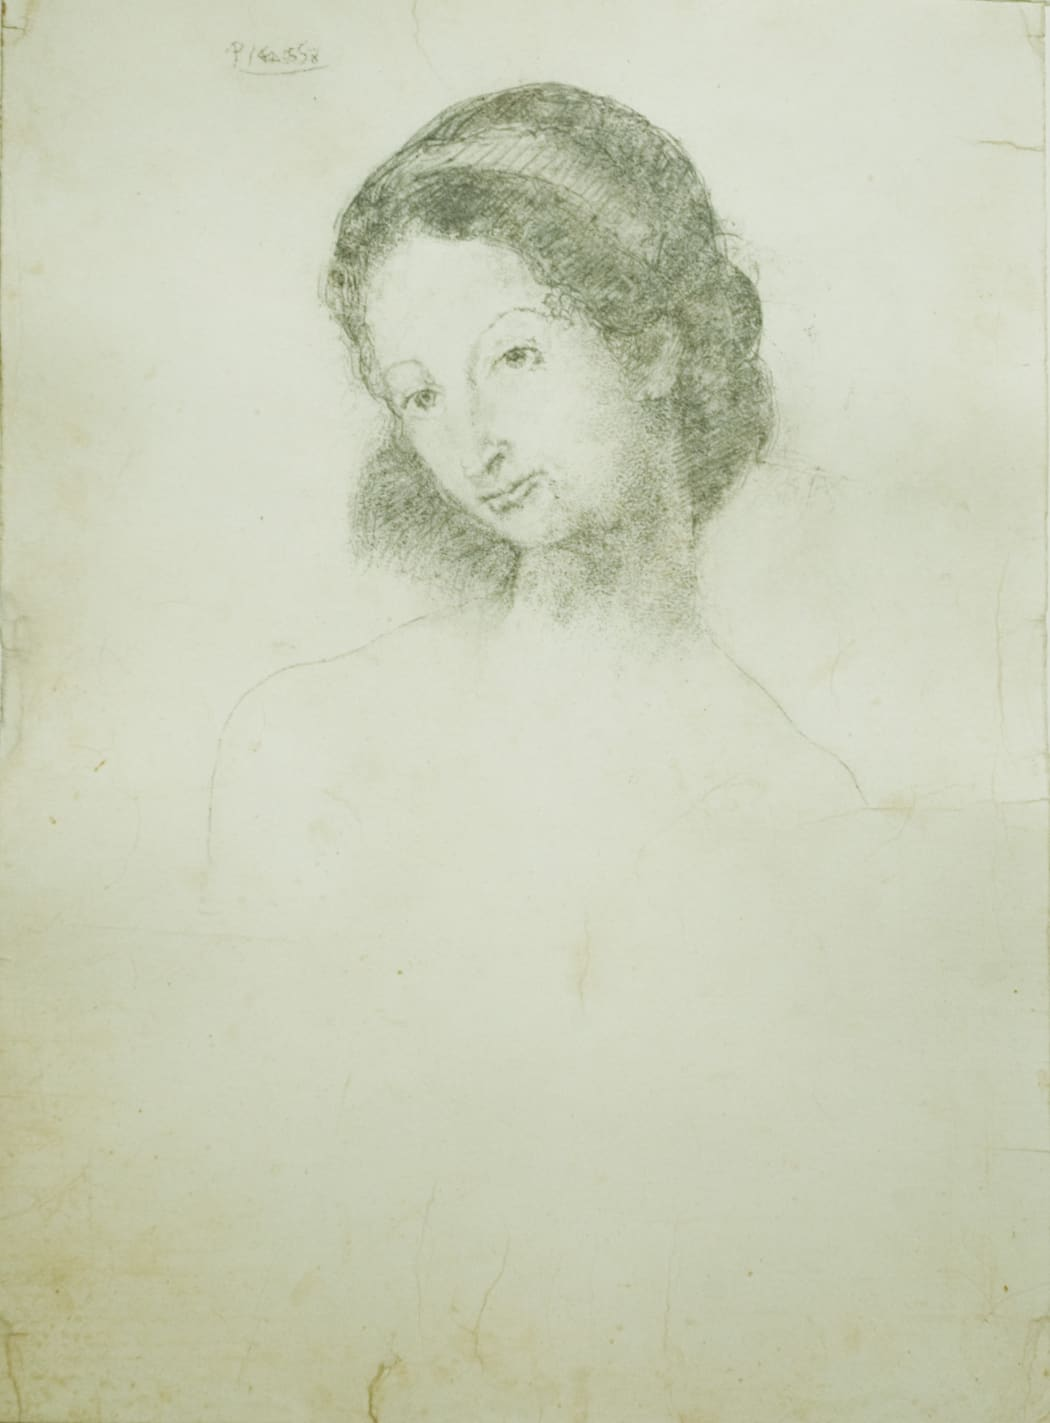 Portrait de la Fille de Charles Morice, 1906, pencil drawing on paper, 26 3/4 x 18 7/8 inches, John Szoke Gallery Collection